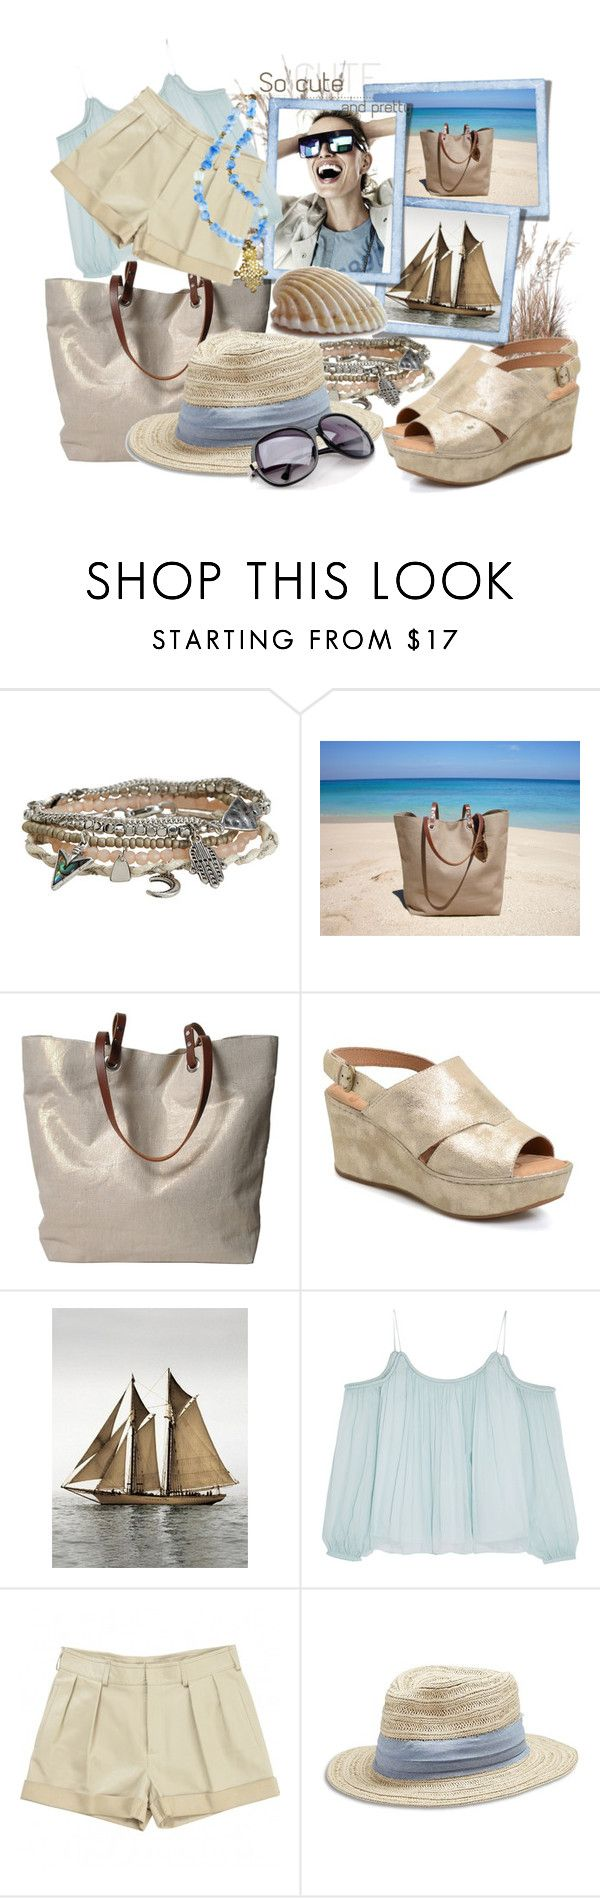 """""""Waves and sand"""" by tasha1973 ❤ liked on Polyvore featuring Aéropostale, Independent Reign, Børn, KAROLINA, Elizabeth and James, Chloé, Lucky Brand and Pembe Club"""